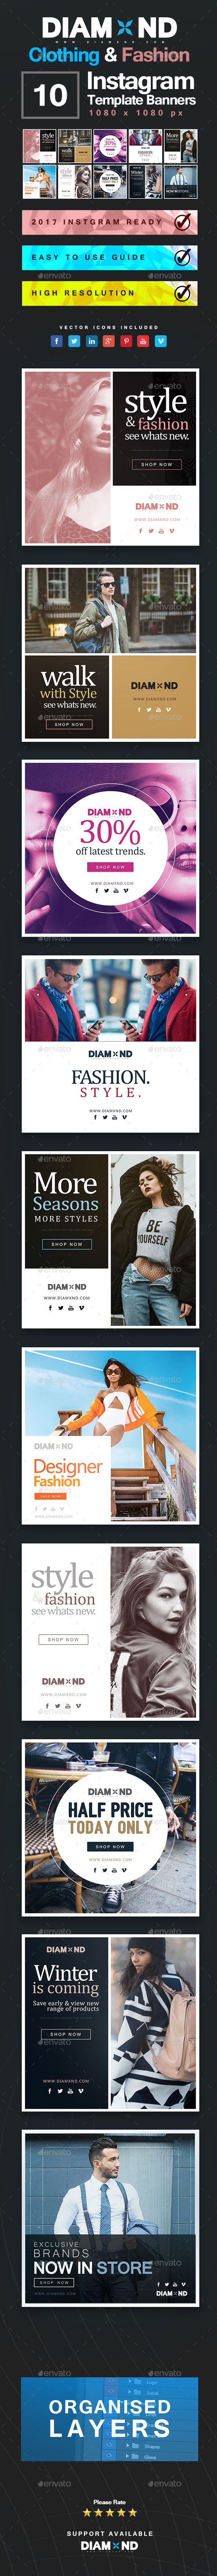 Clothing & Fashion Instagram Templates - #Banners & Ads #Web Elements Download here: https://graphicriver.net/item/clothing-fashion-instagram-templates/20090127?ref=alena994